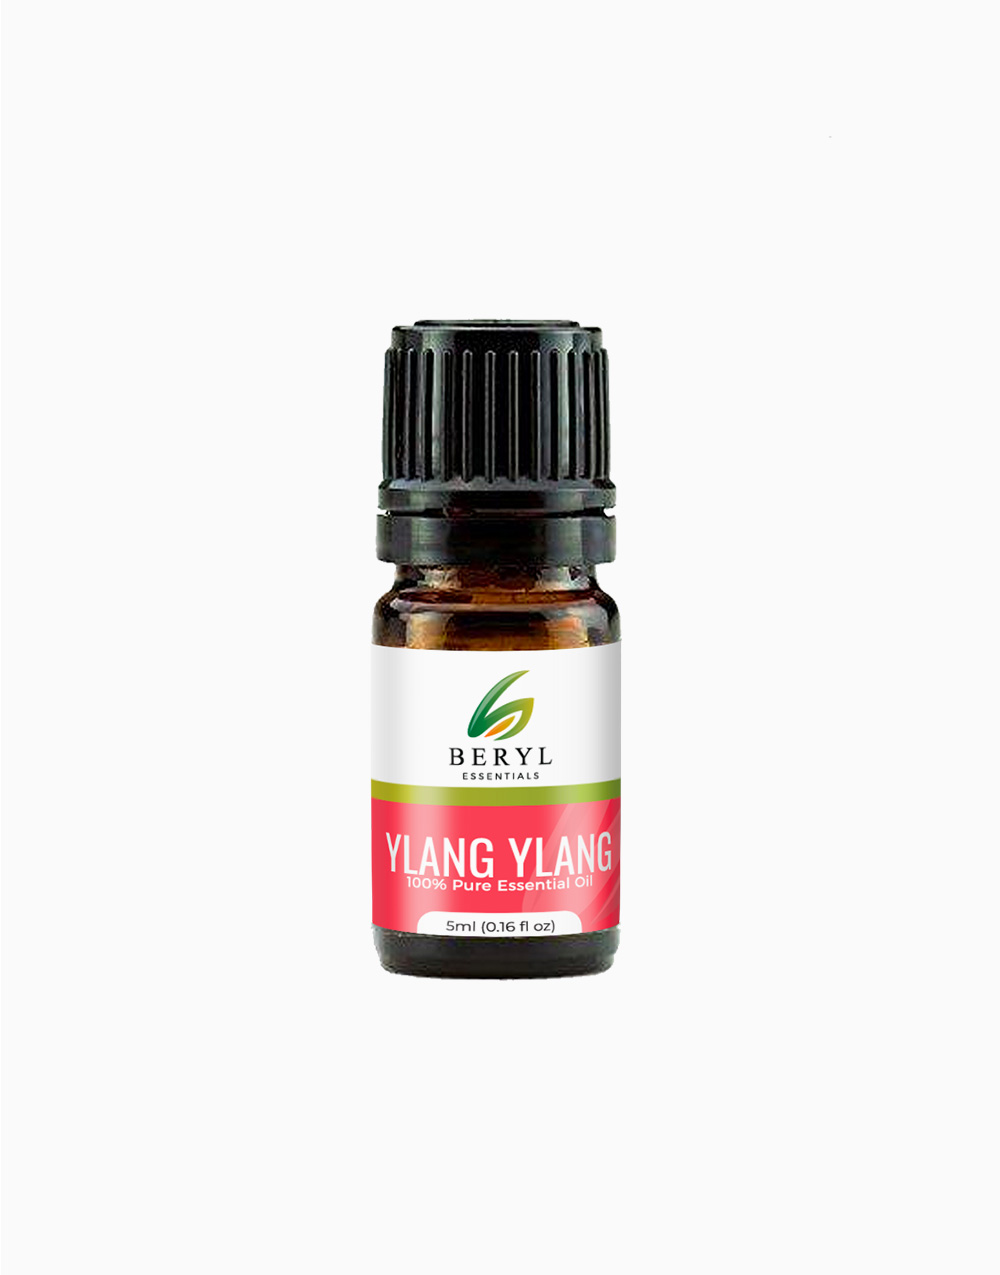 Ylang Ylang Essential Oil (5ml) by Beryl Essentials